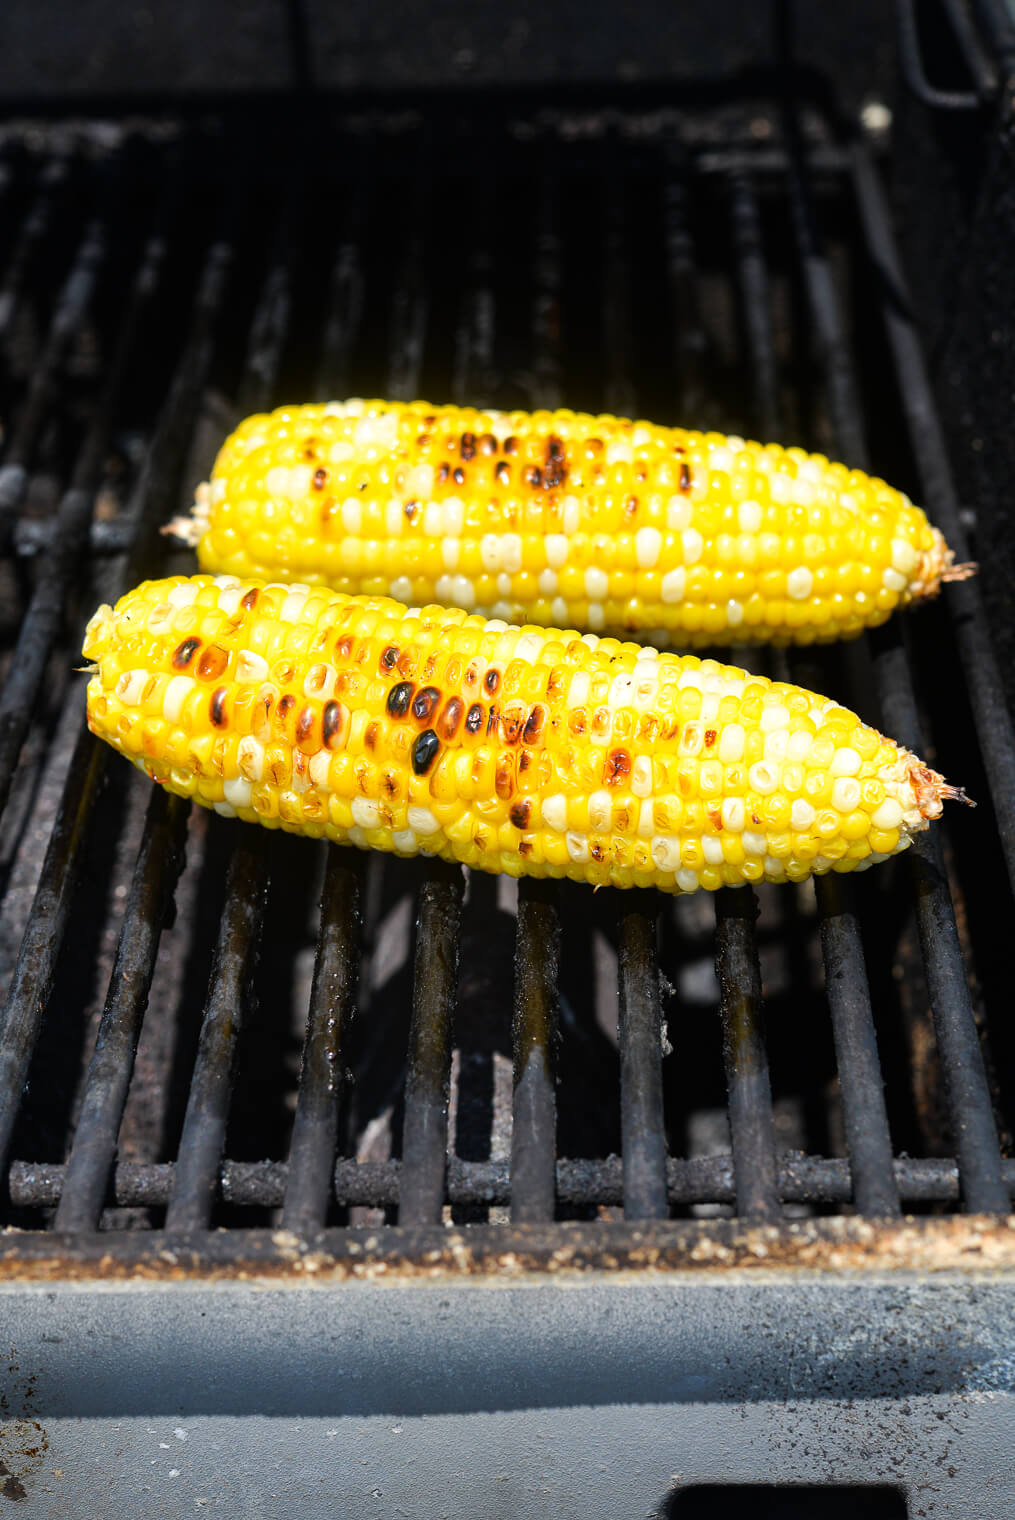 2 husked cobs of corn with grill marks on a the grates of a gas grill